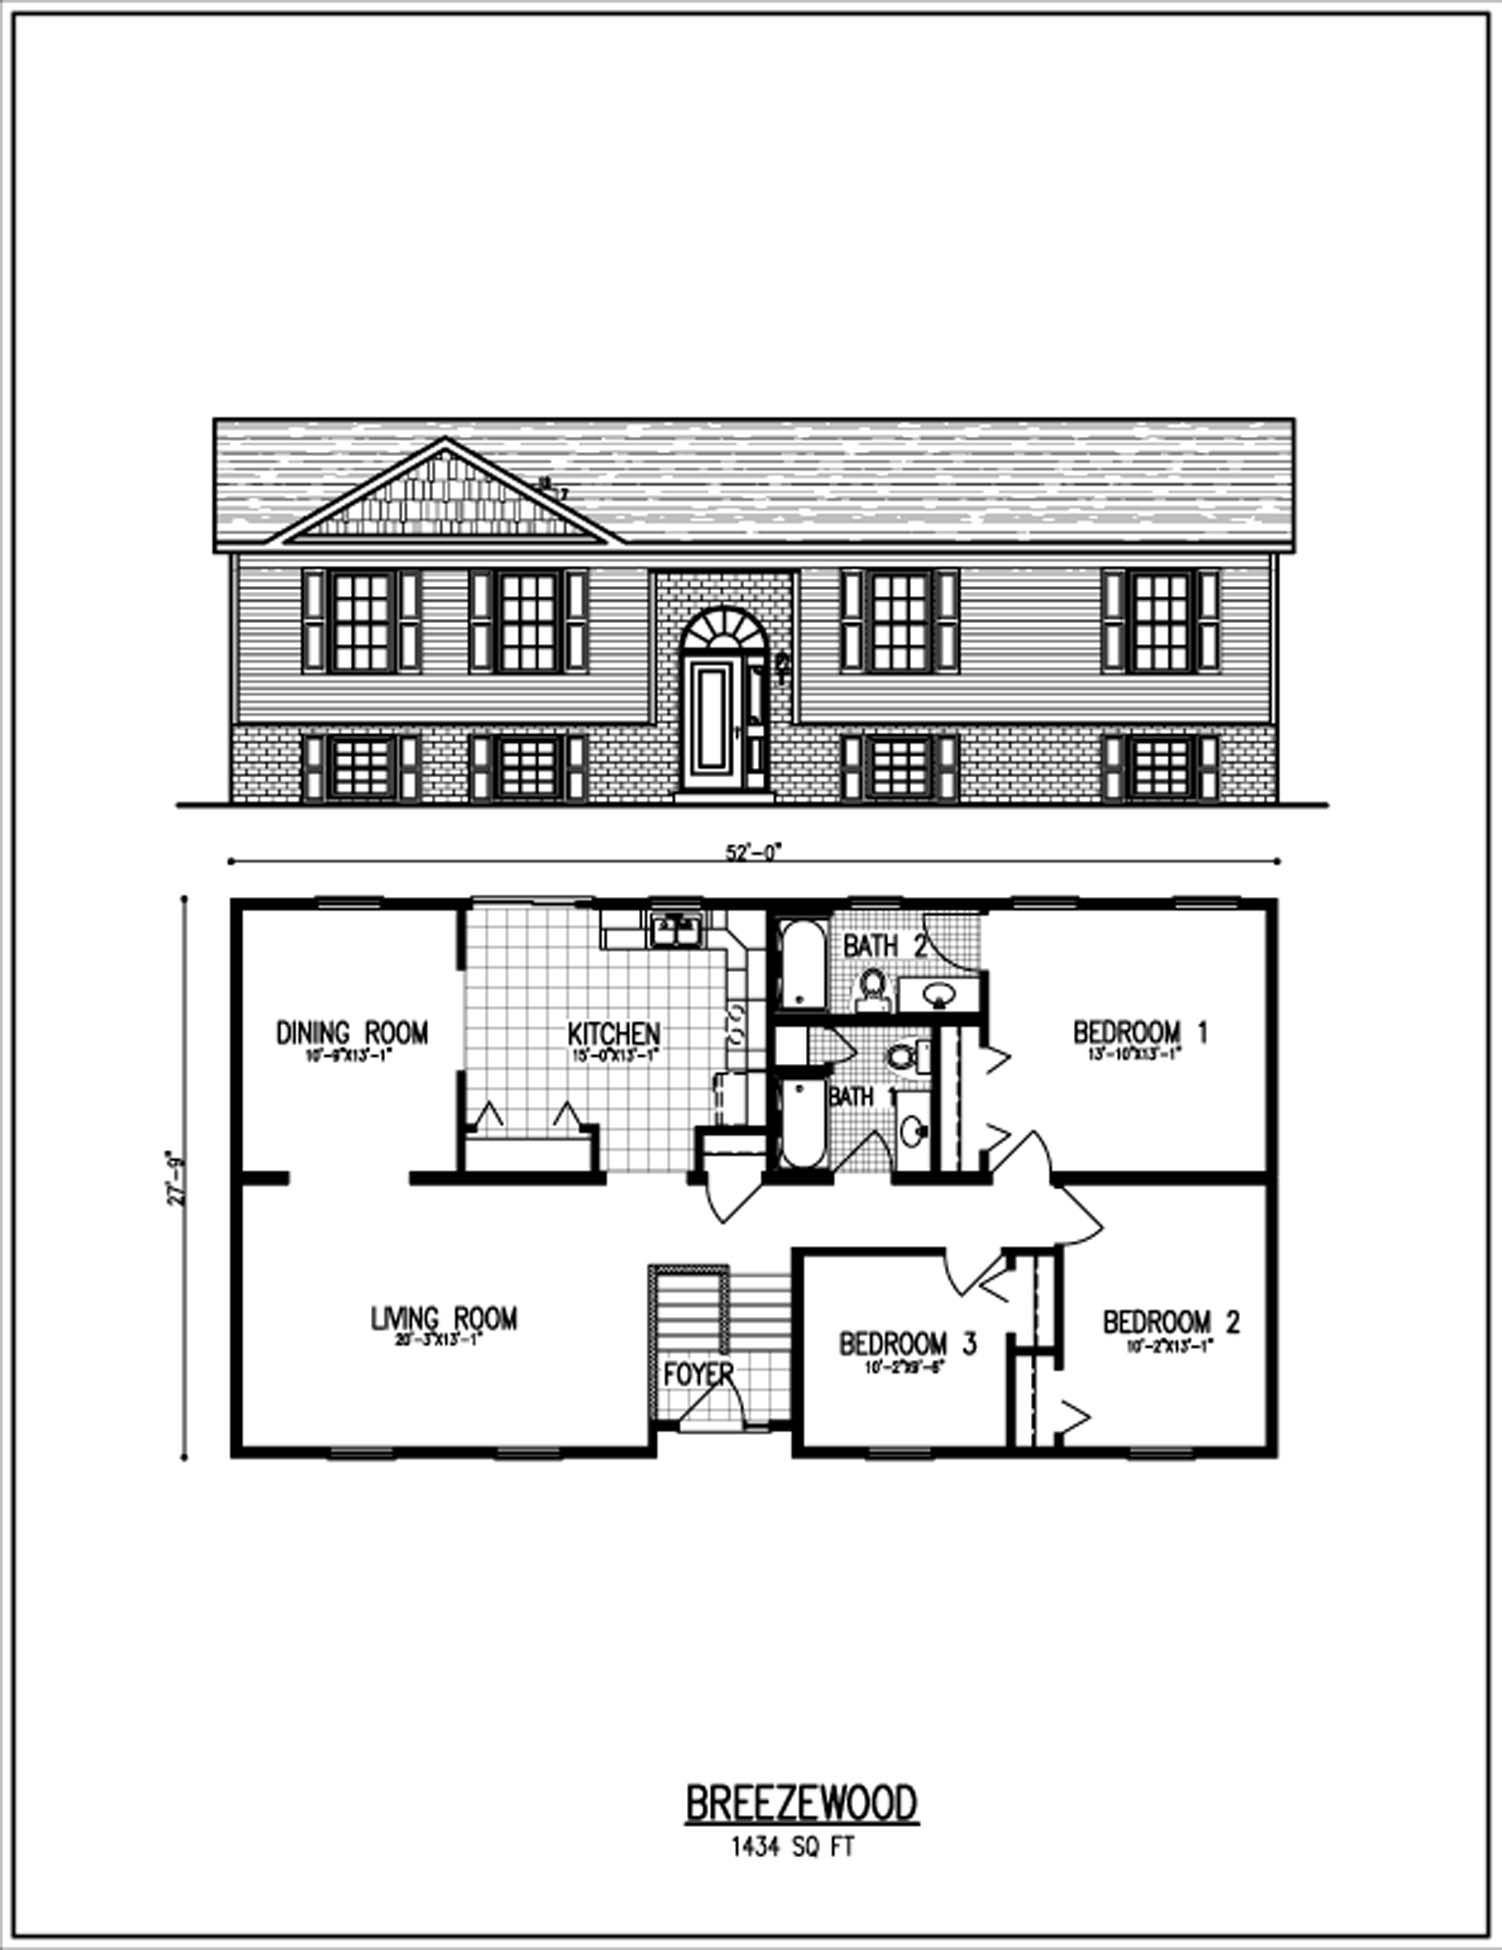 Typical Raised Ranch Plan Ranch House Designs Bungalow Floor Plans Floor Plans Ranch